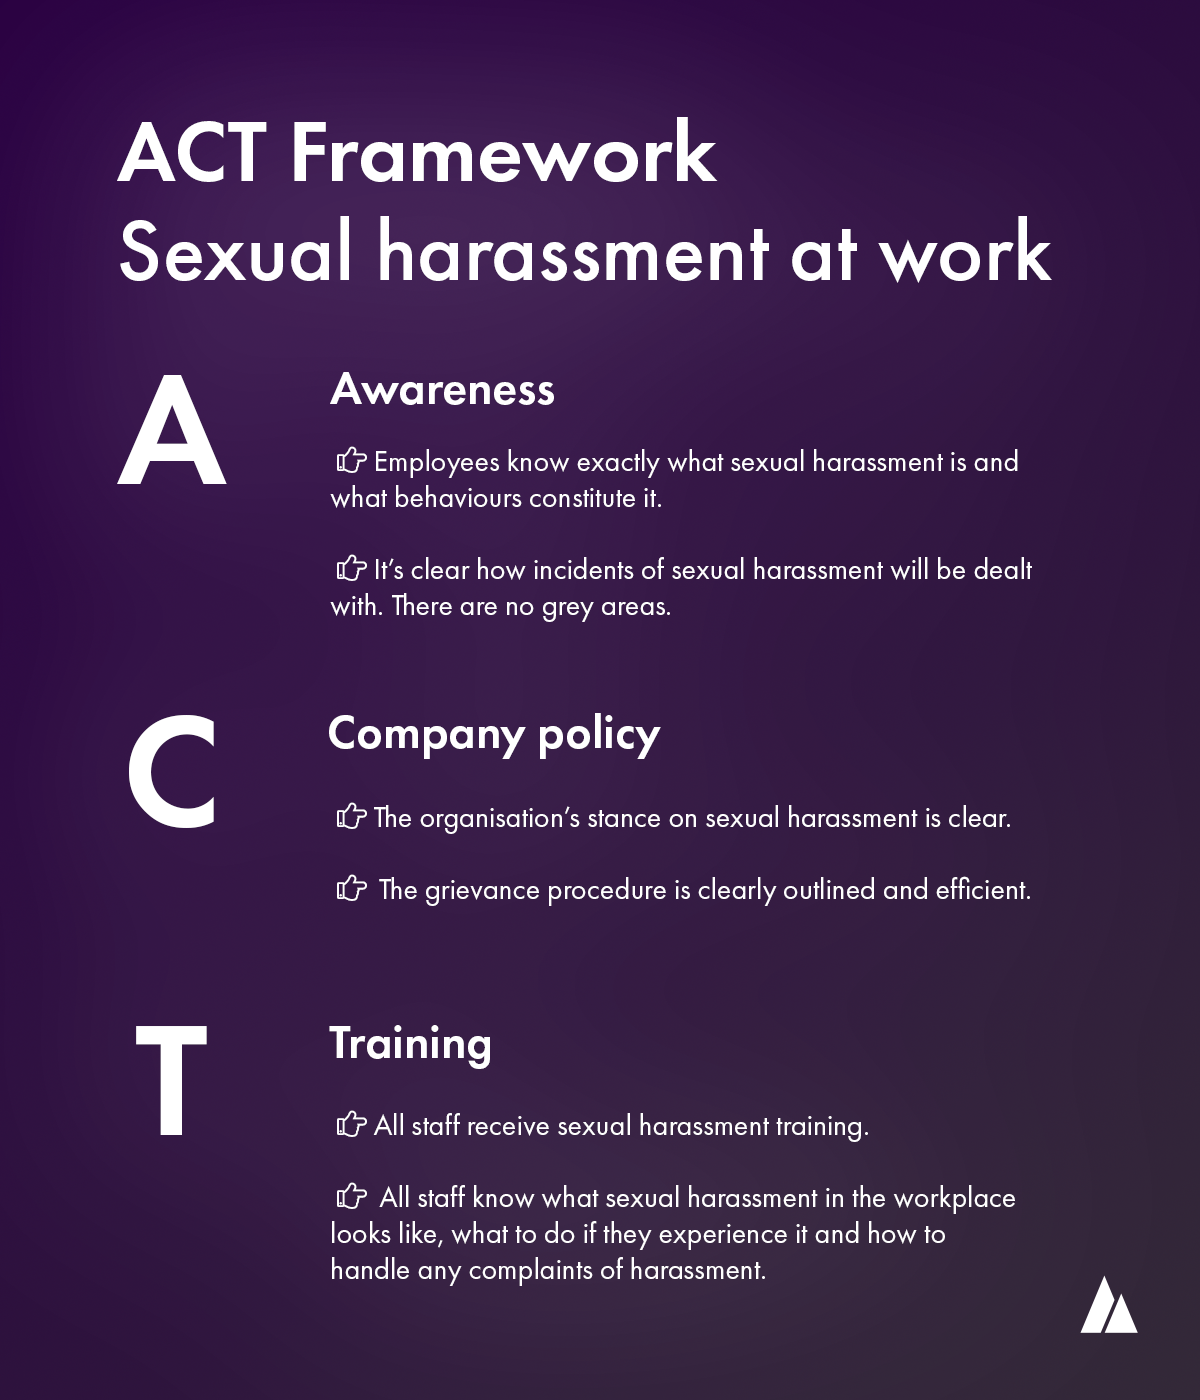 Act Framework to reduce sexual harassment at work